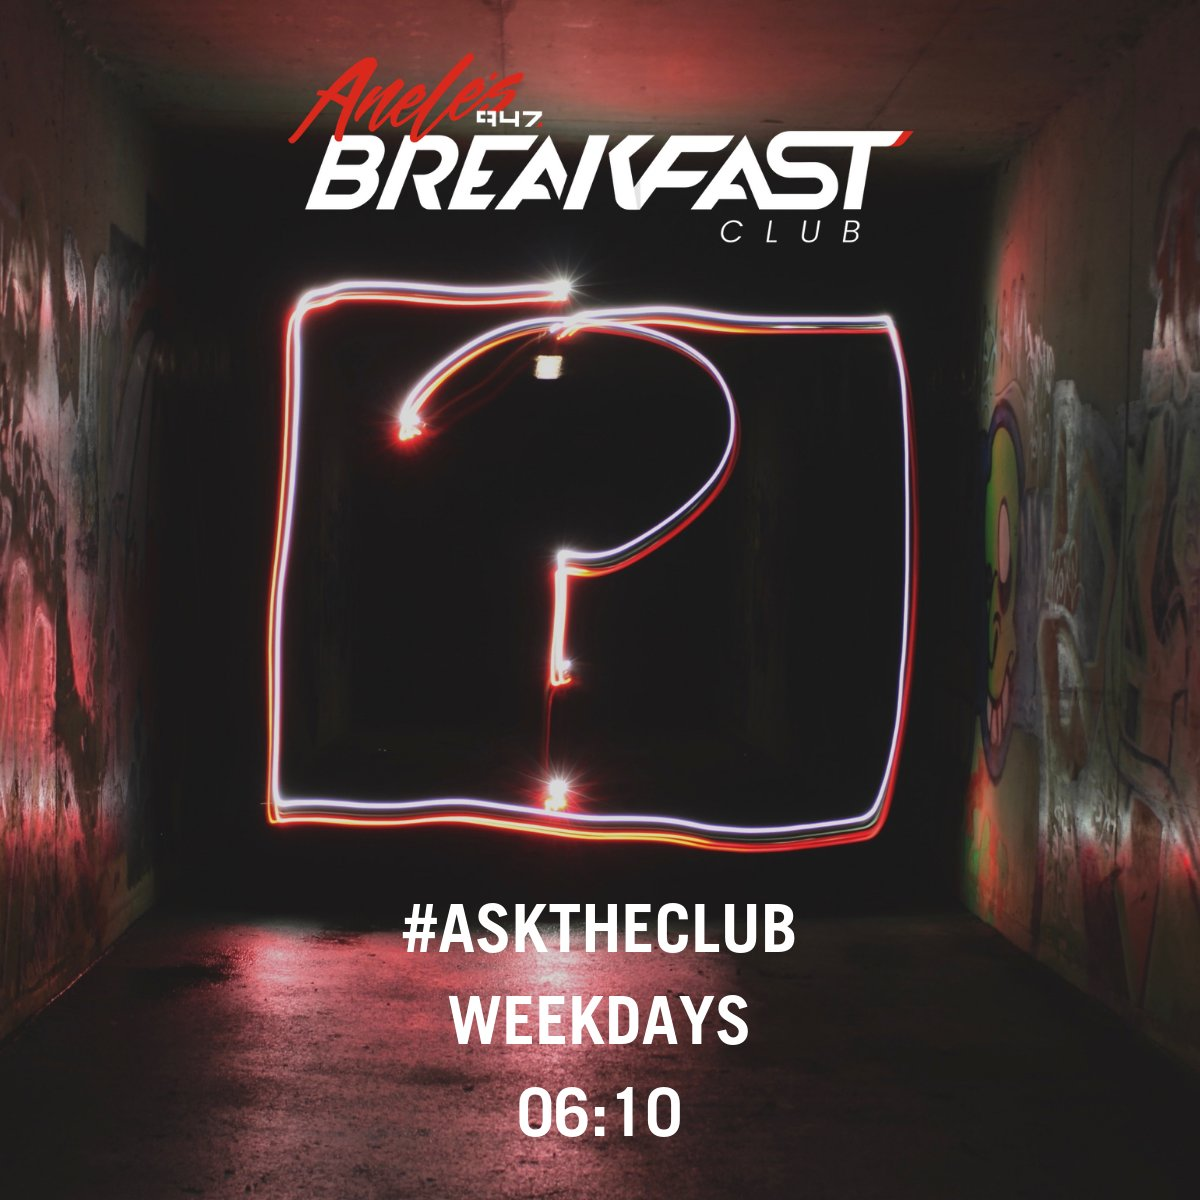 Previously on Ask The Club...